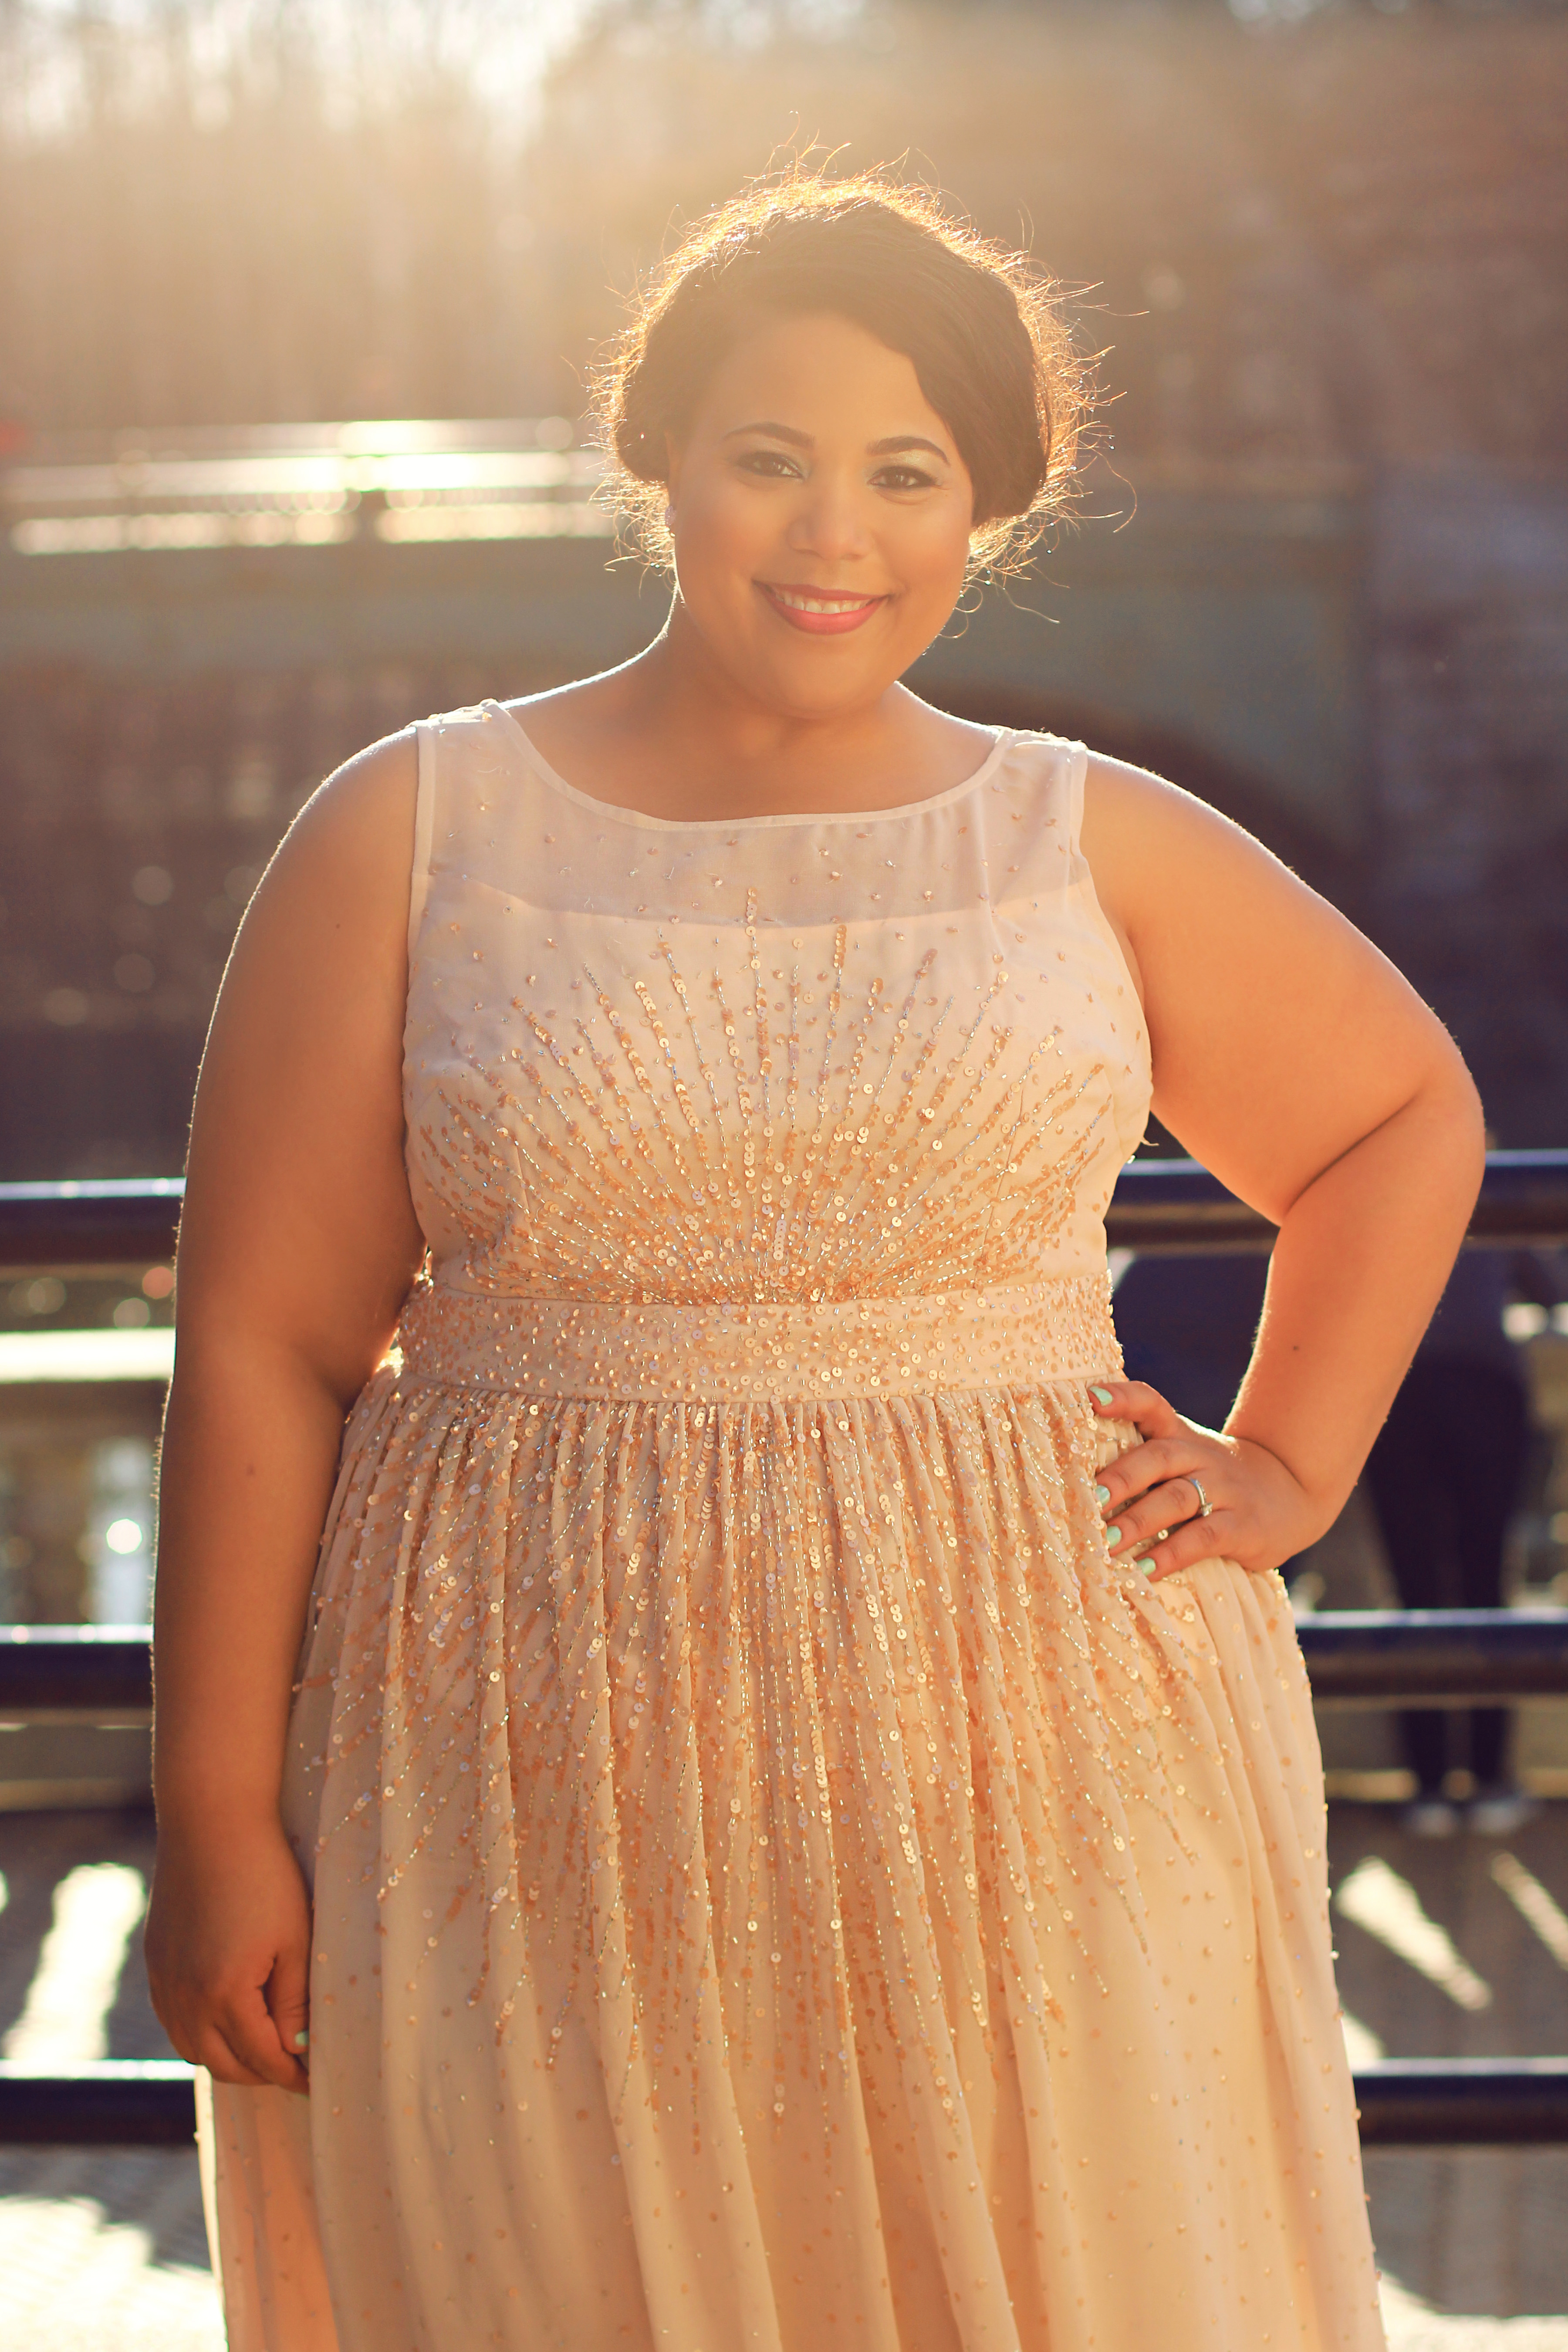 Plus Size Prom Formal Dress Giveaway Plusprom14 Garnerstyle